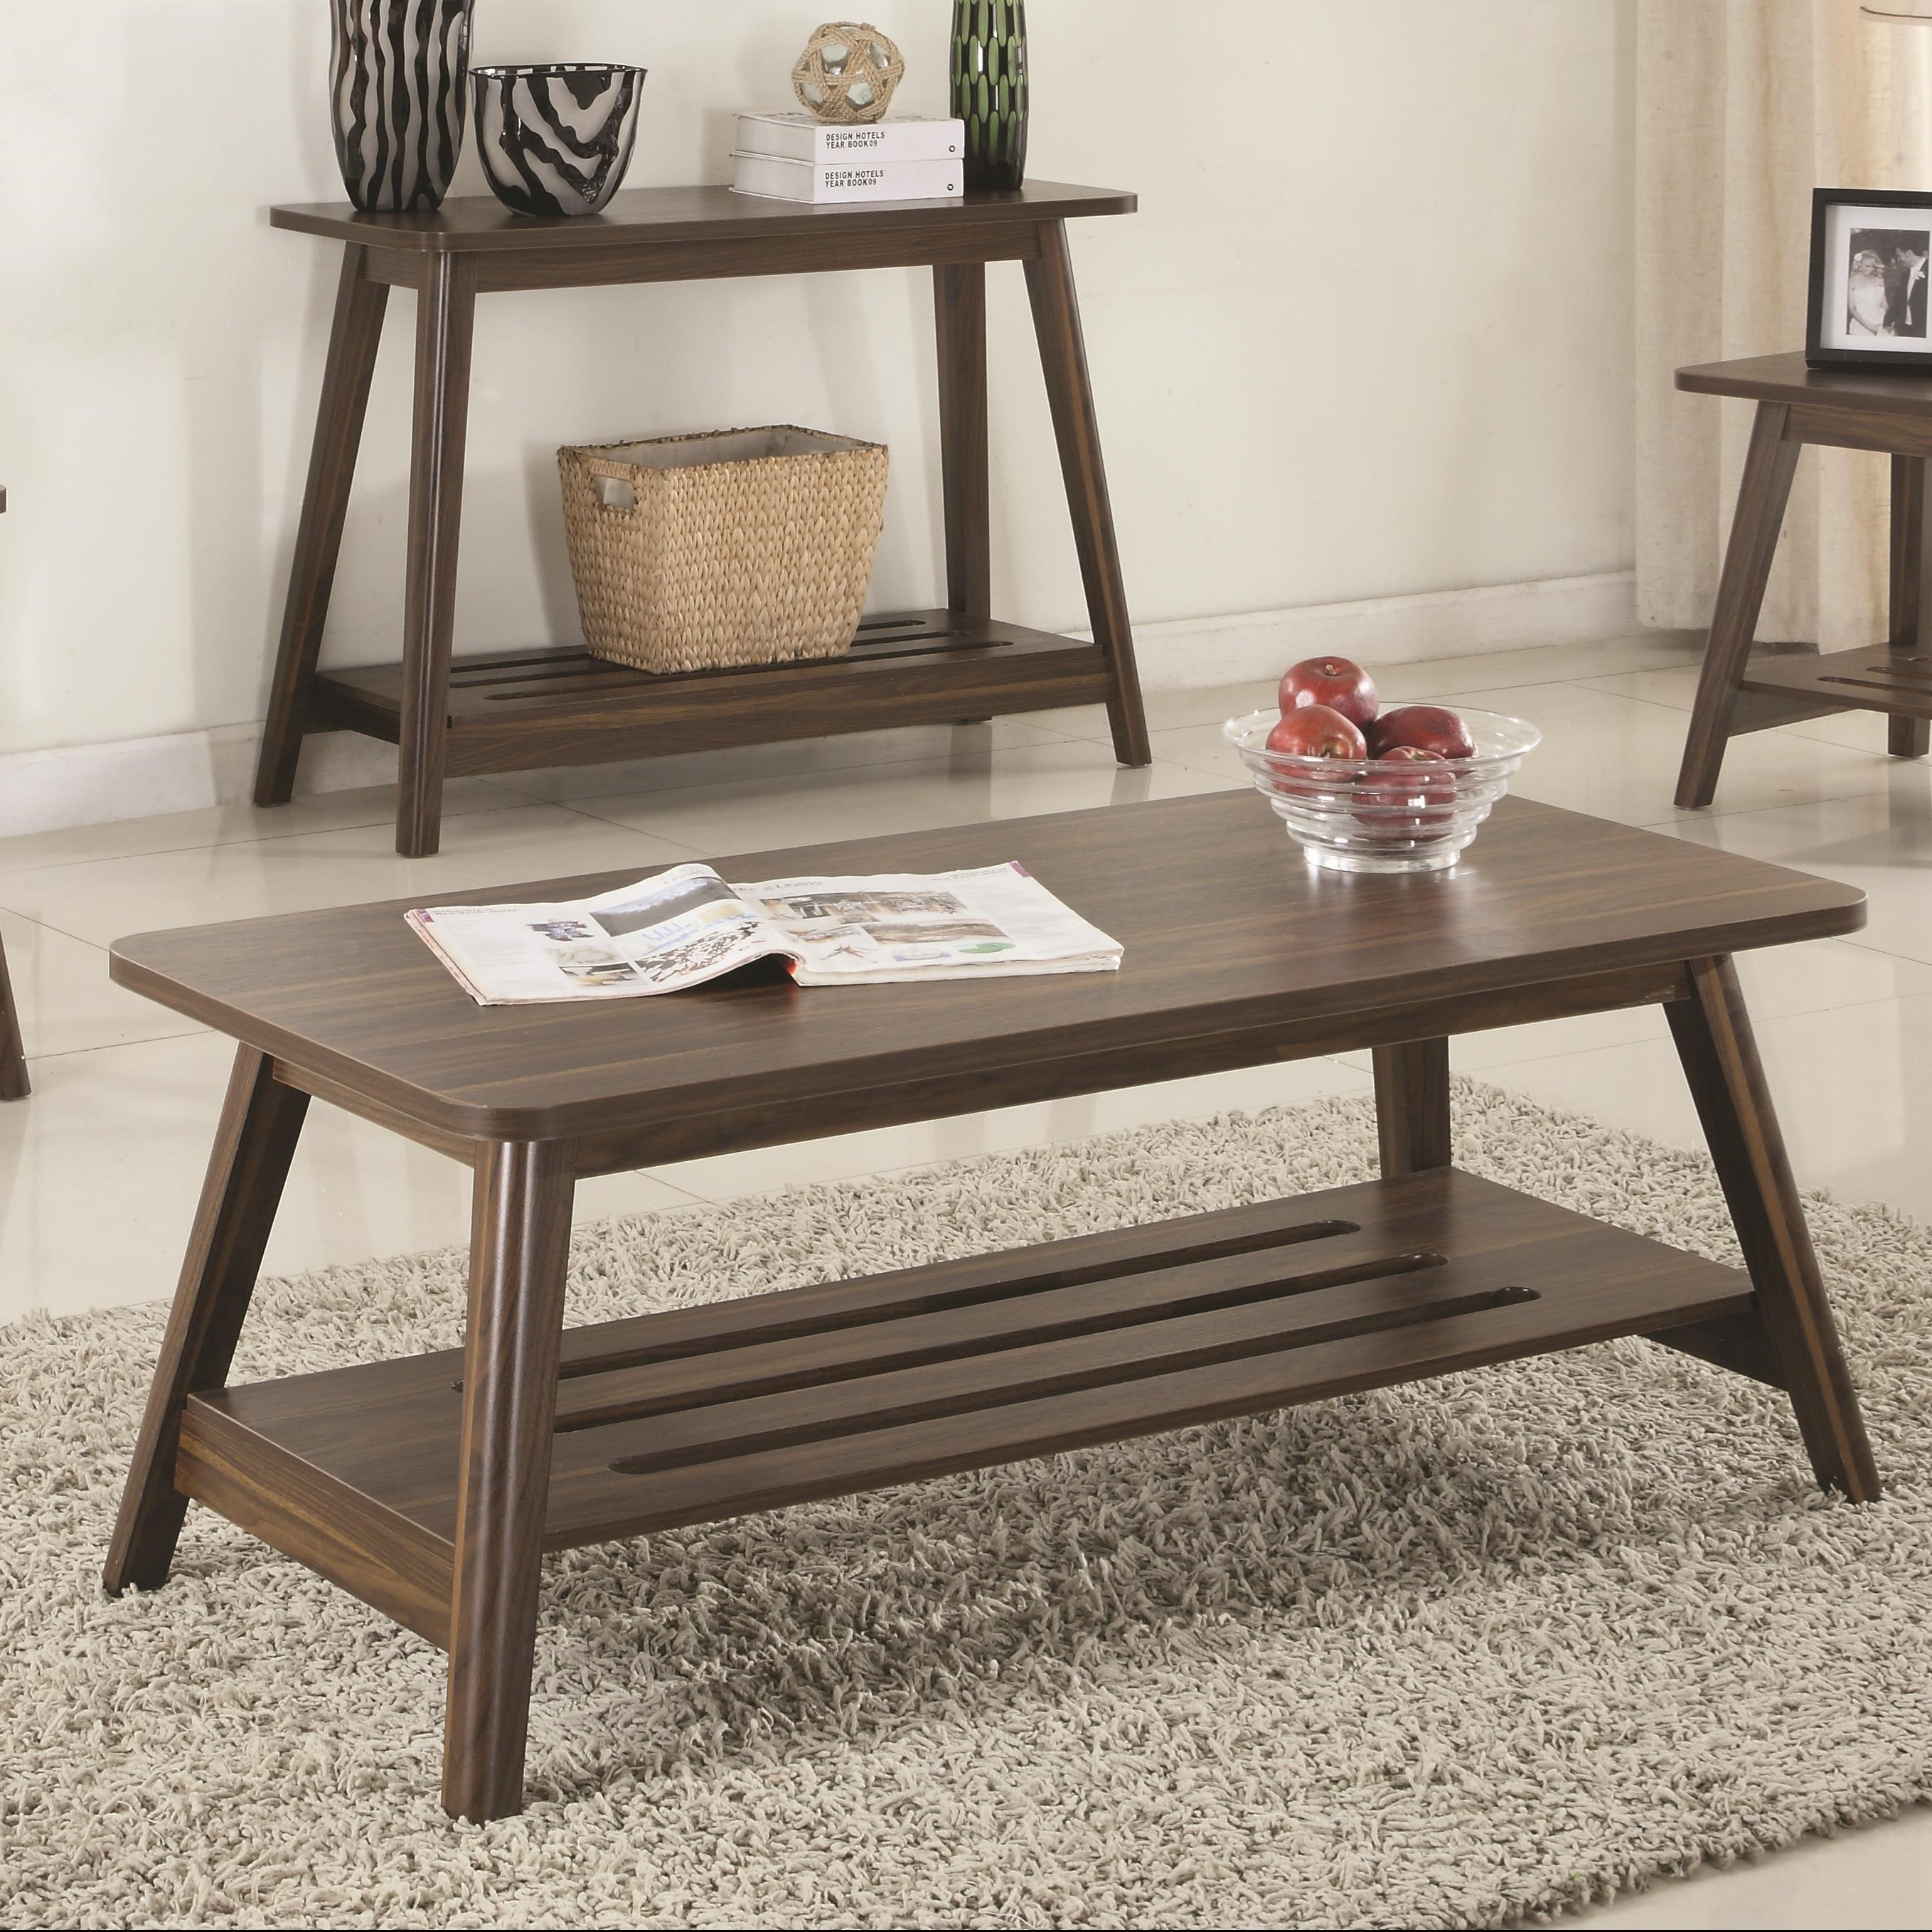 Coaster 72055 Coffee Table - Item Number: 720558